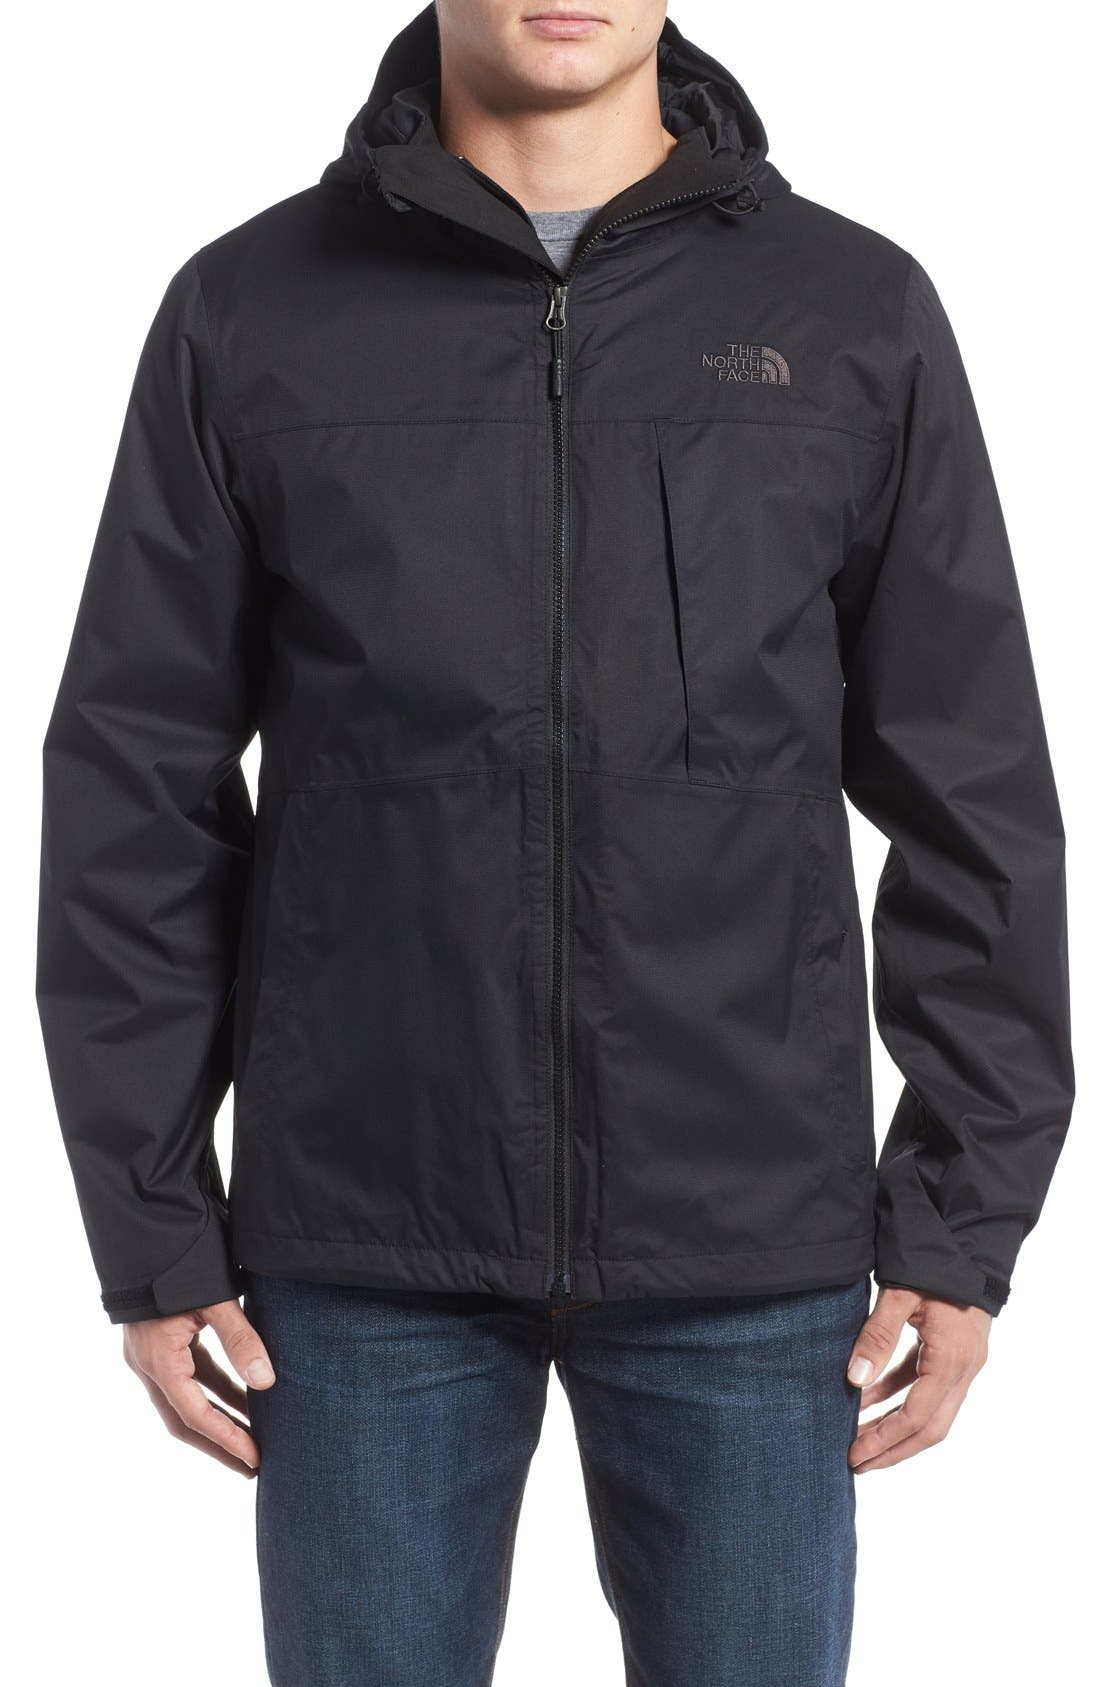 Alternate Image 1 Selected - The North Face 'Arrowood' TriClimate® 3-in-1 Jacket